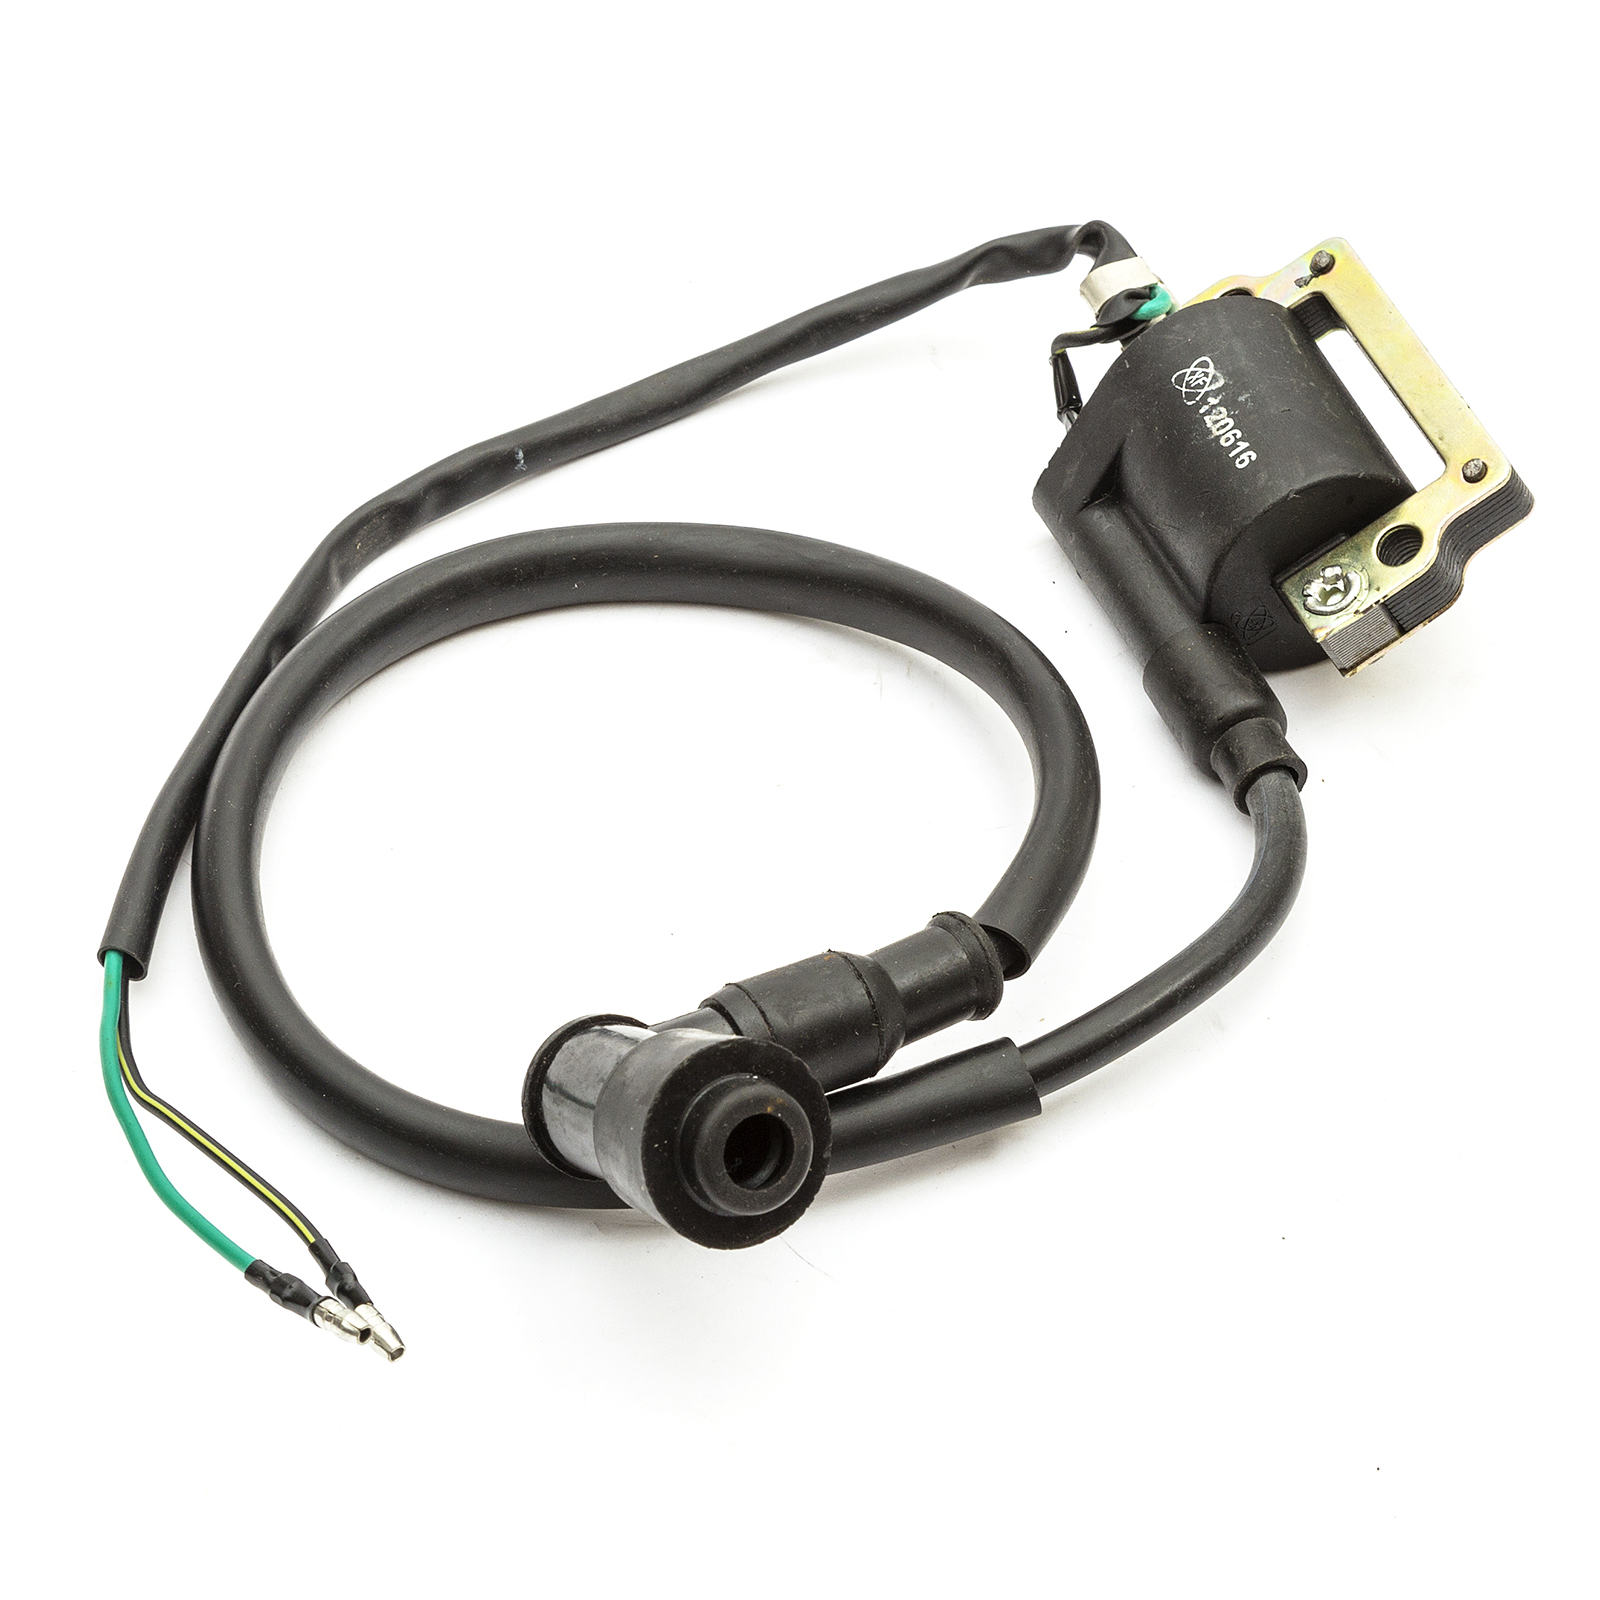 Details about Pit Dirt Bike Ignition Coil Chinese Quad Bike ATV HT Lead  Spark Plug Stator CDI